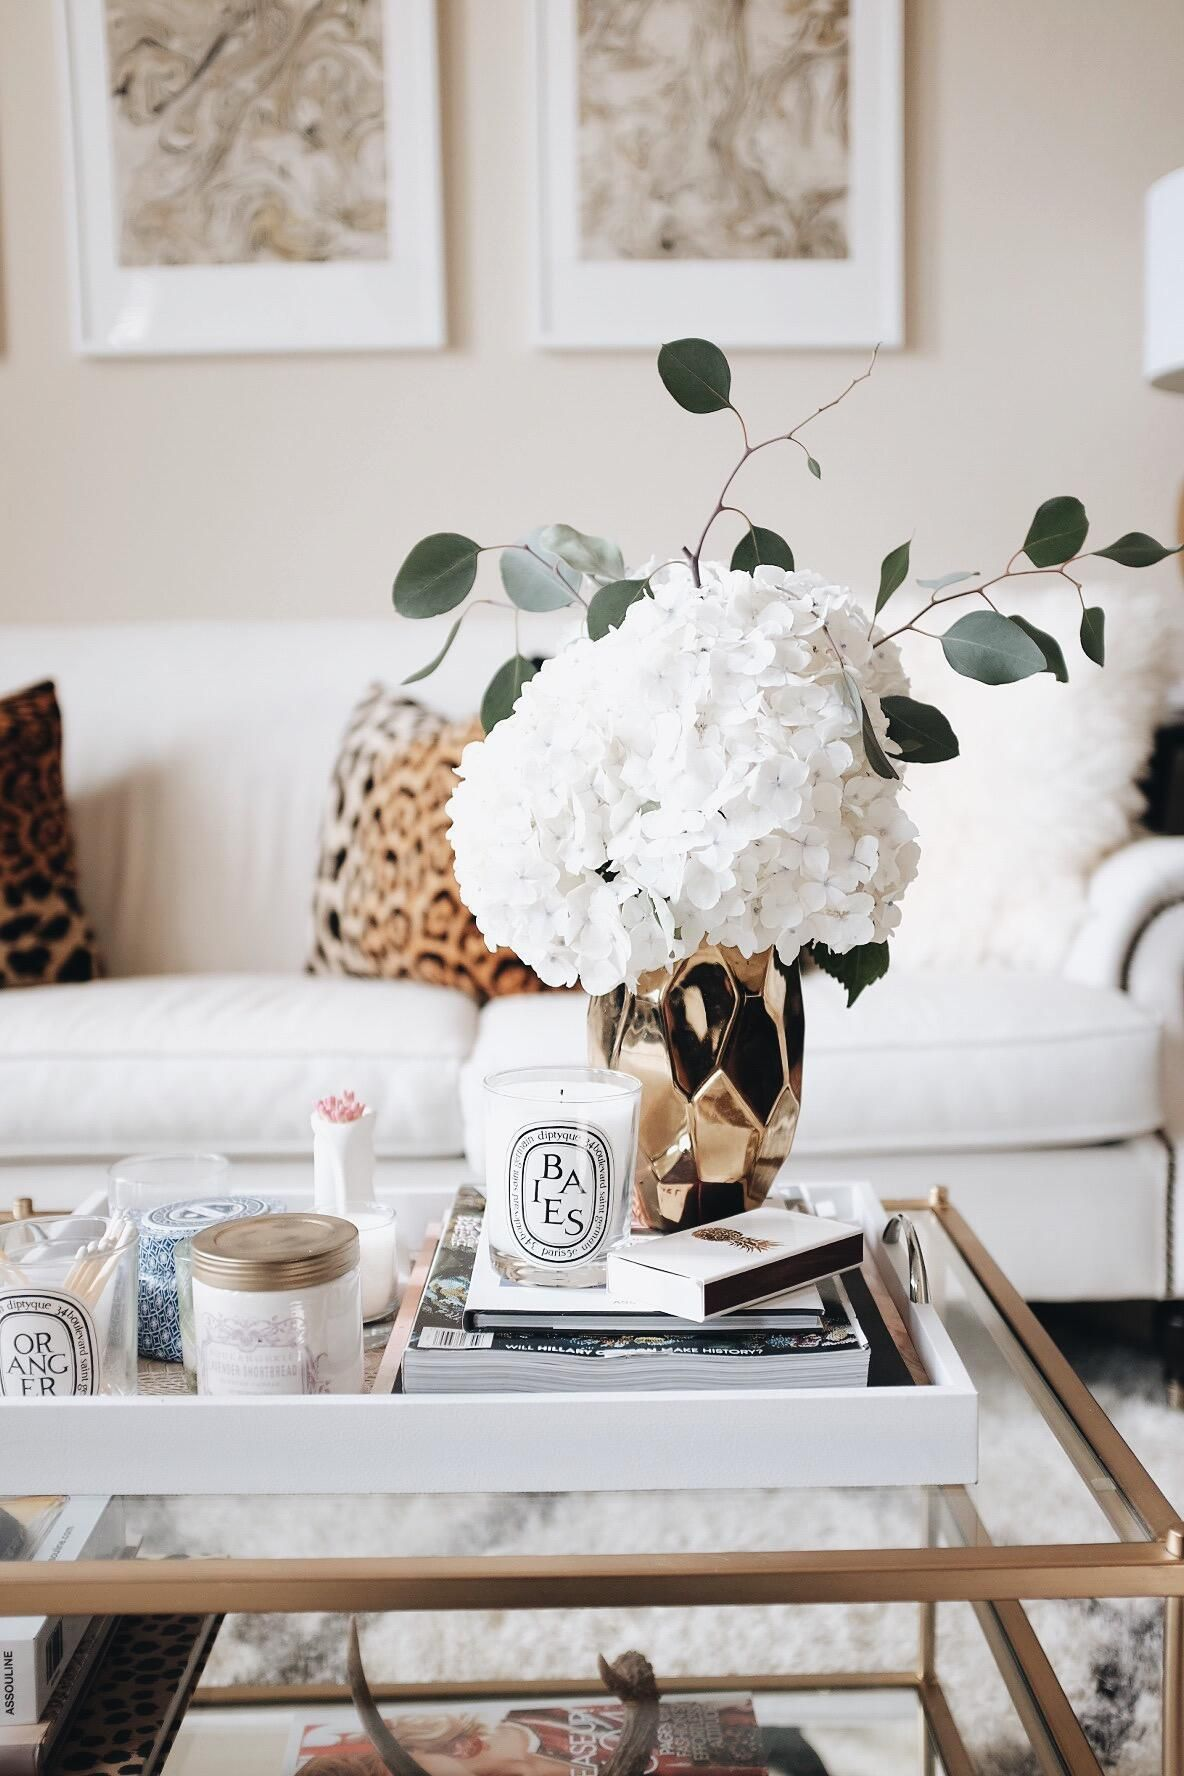 Coffee Table Books For A Stylish Home Decor Home Decor